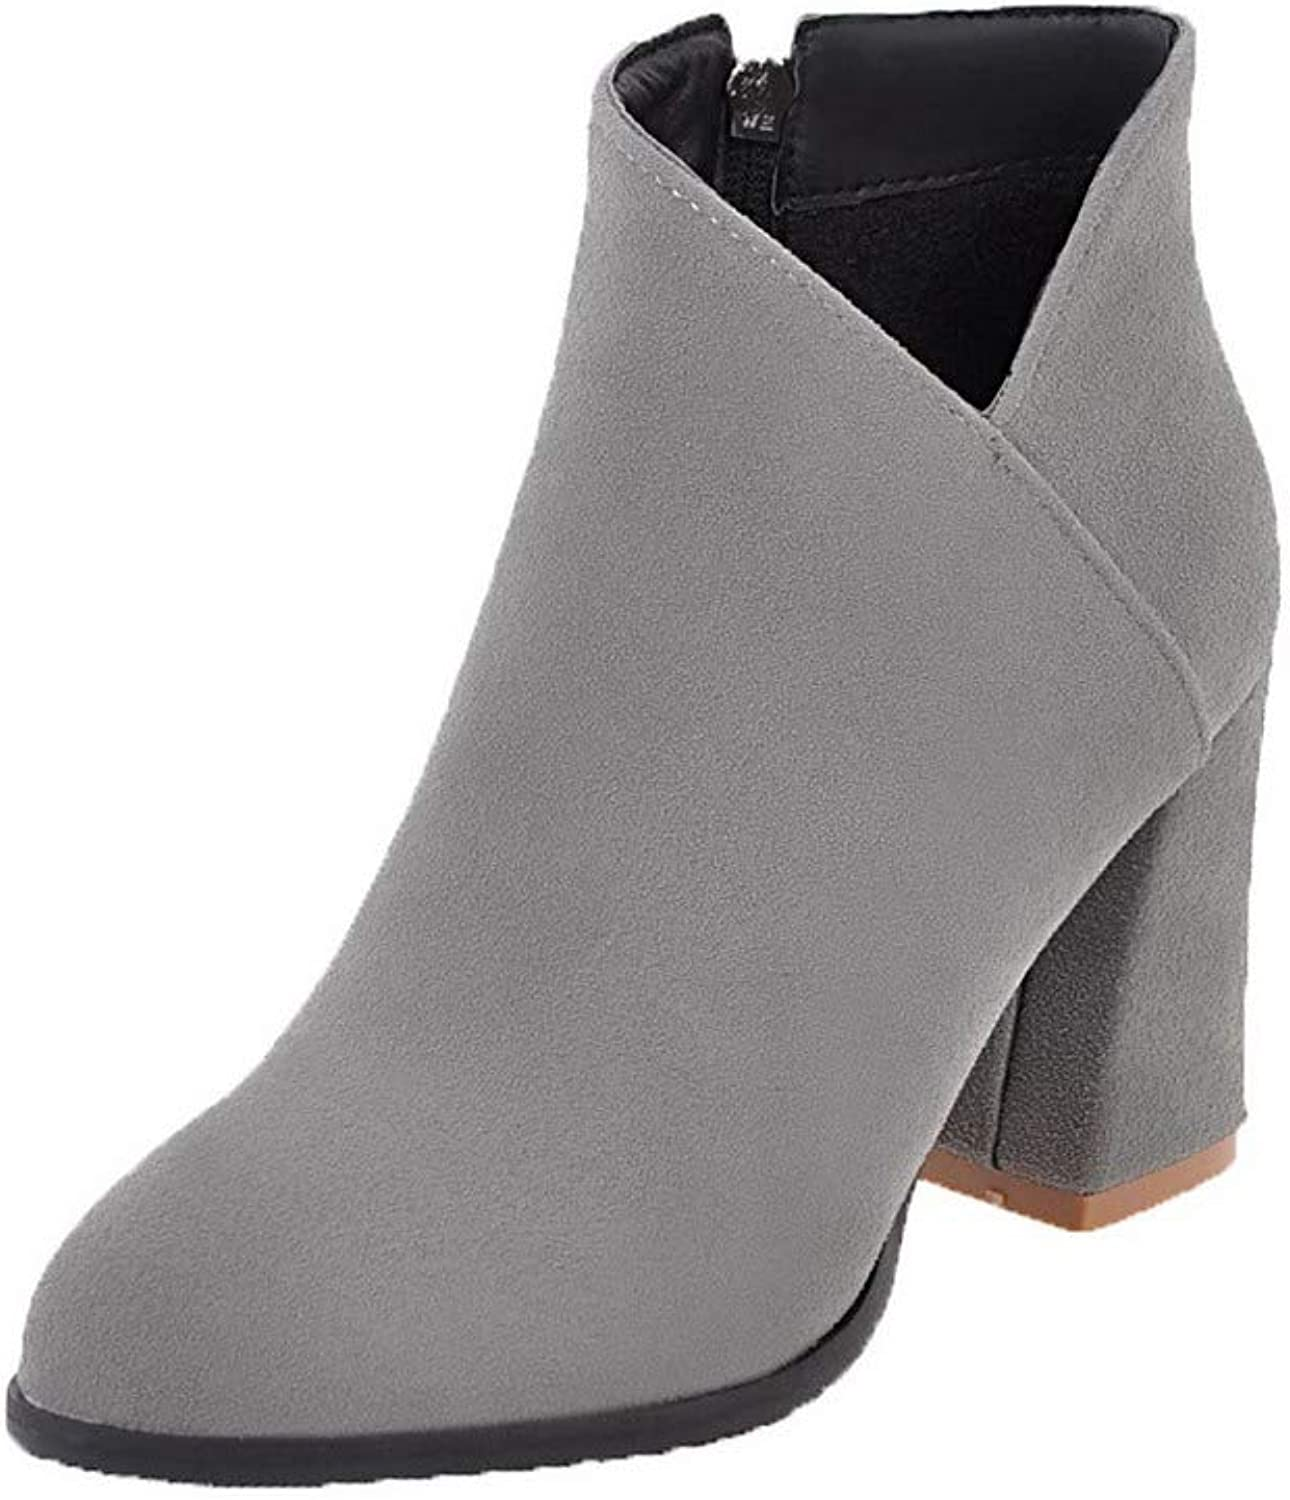 WeenFashion Women's Round-Toe Low-Top High-Heels Solid Frosted Boots, AMGXX130634